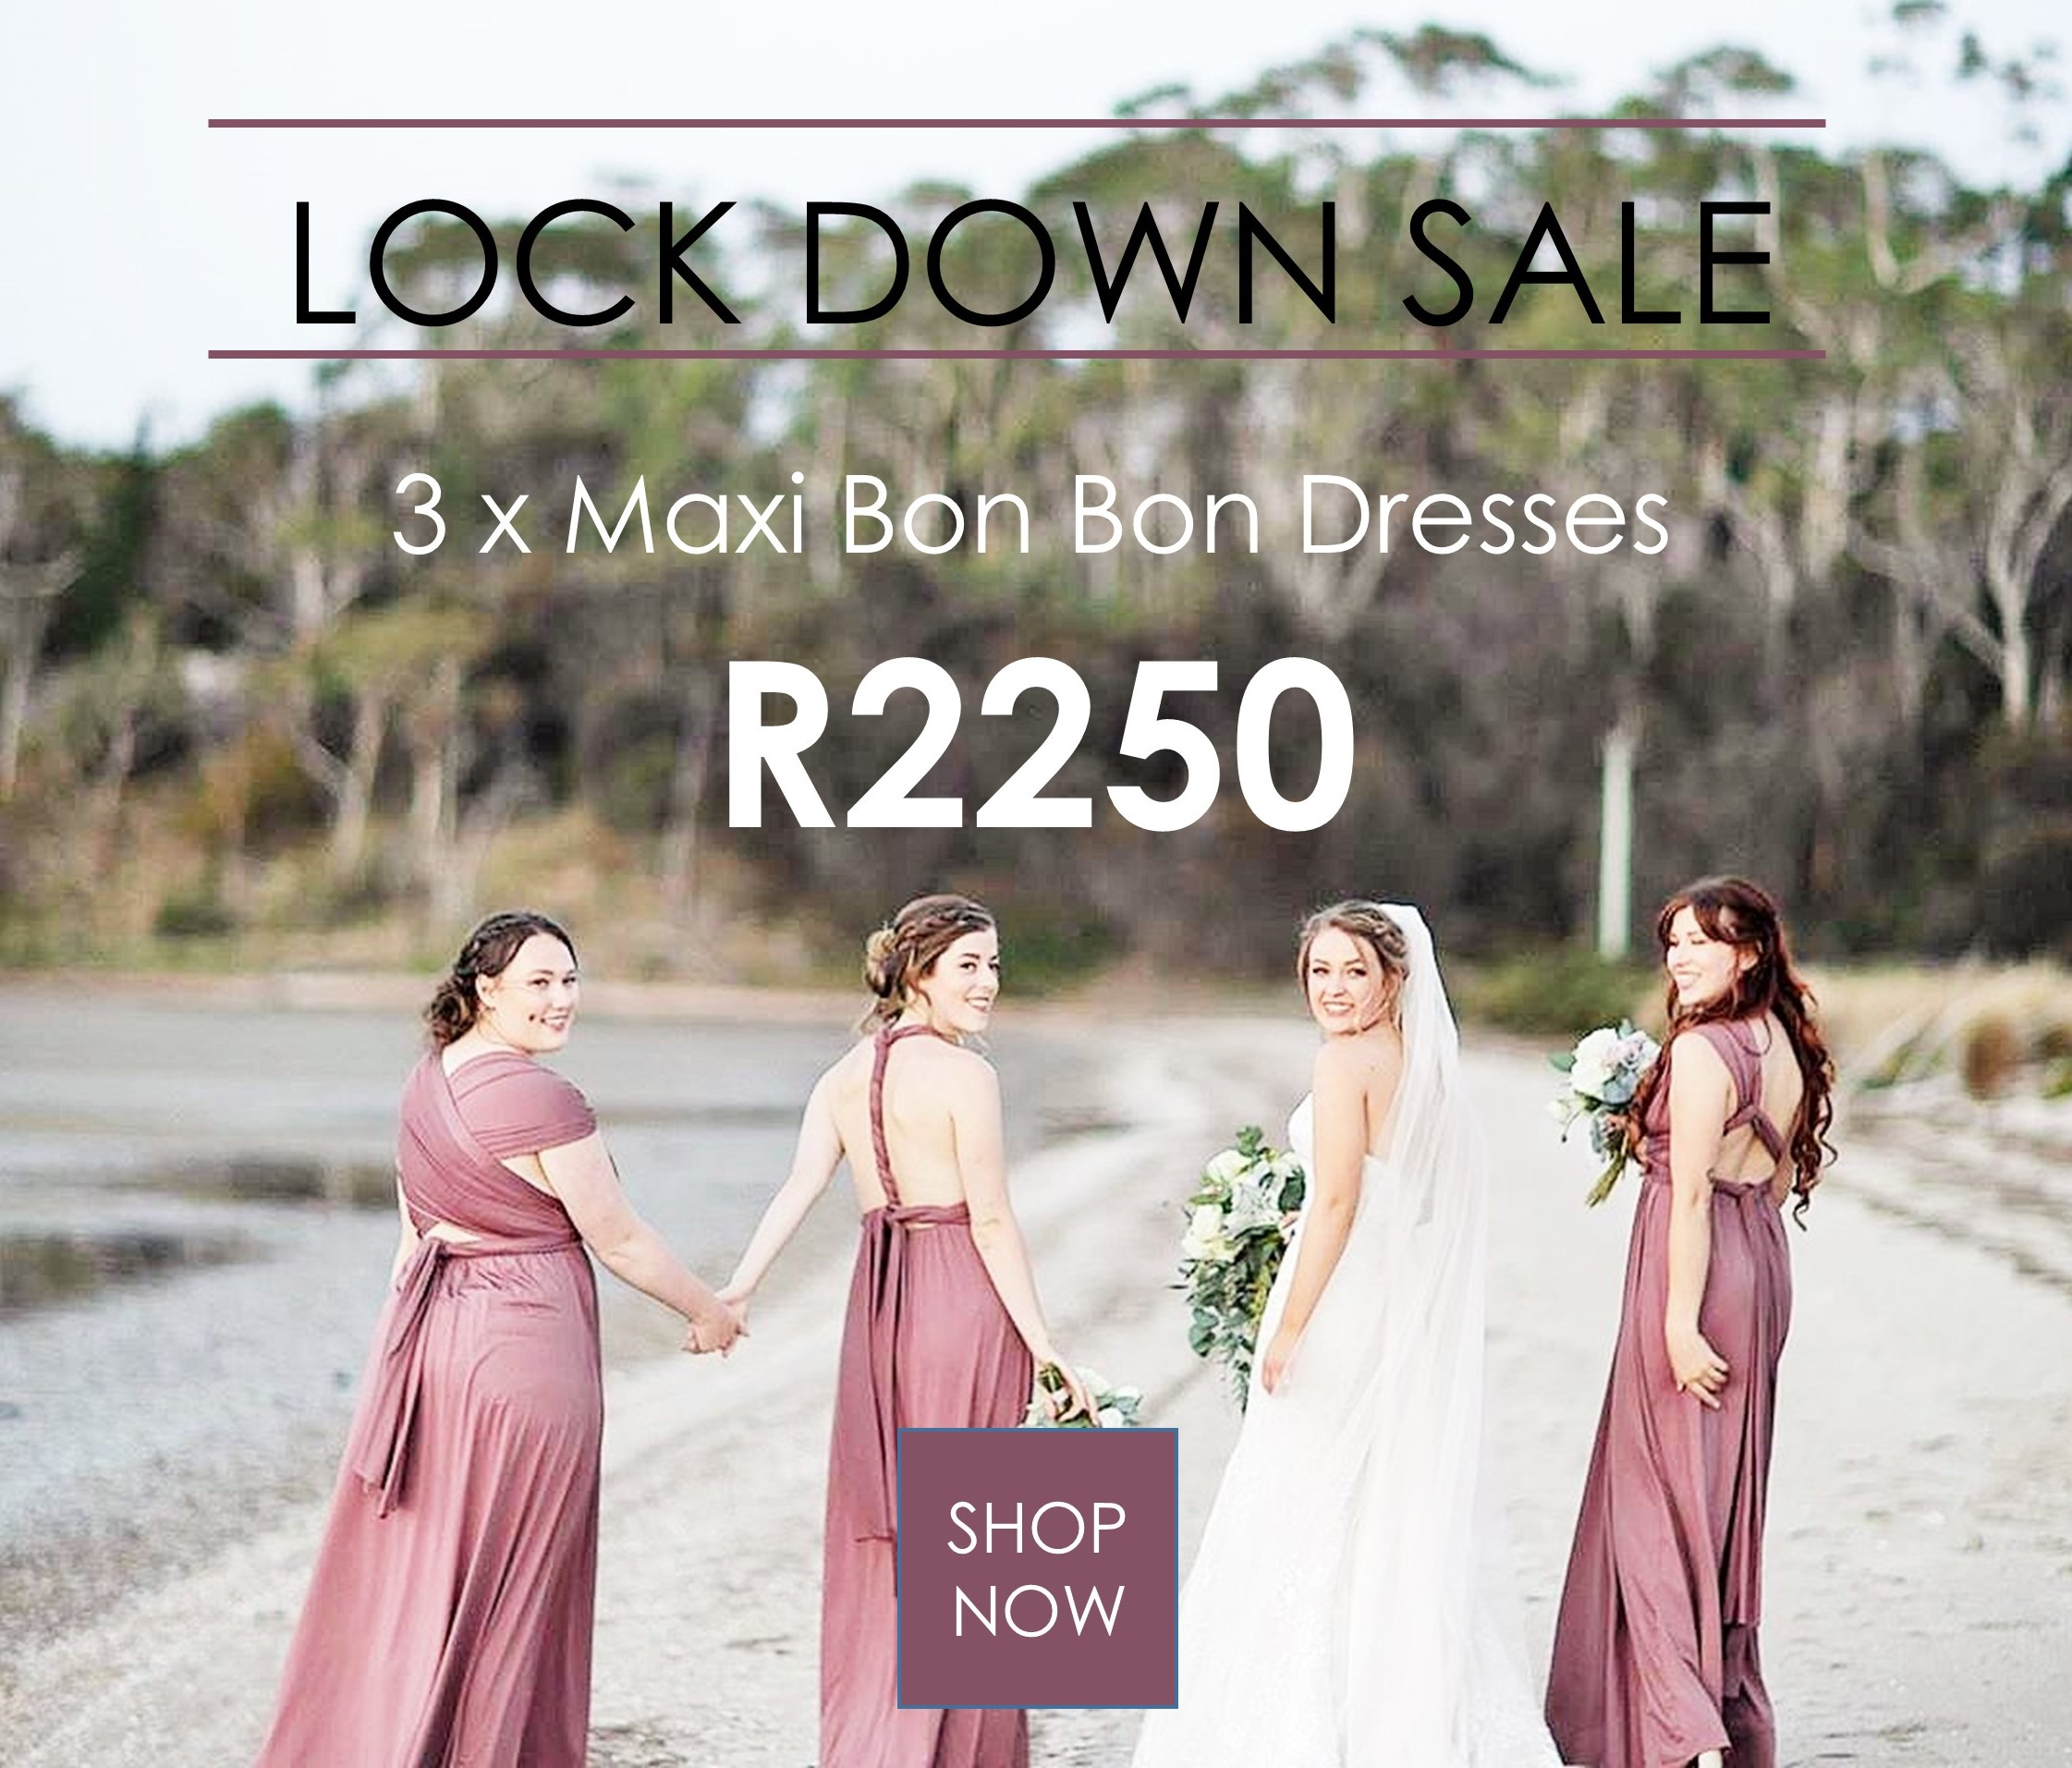 LOCK DOWN SALE – Bridesmaid Dresses – Order now, pay later